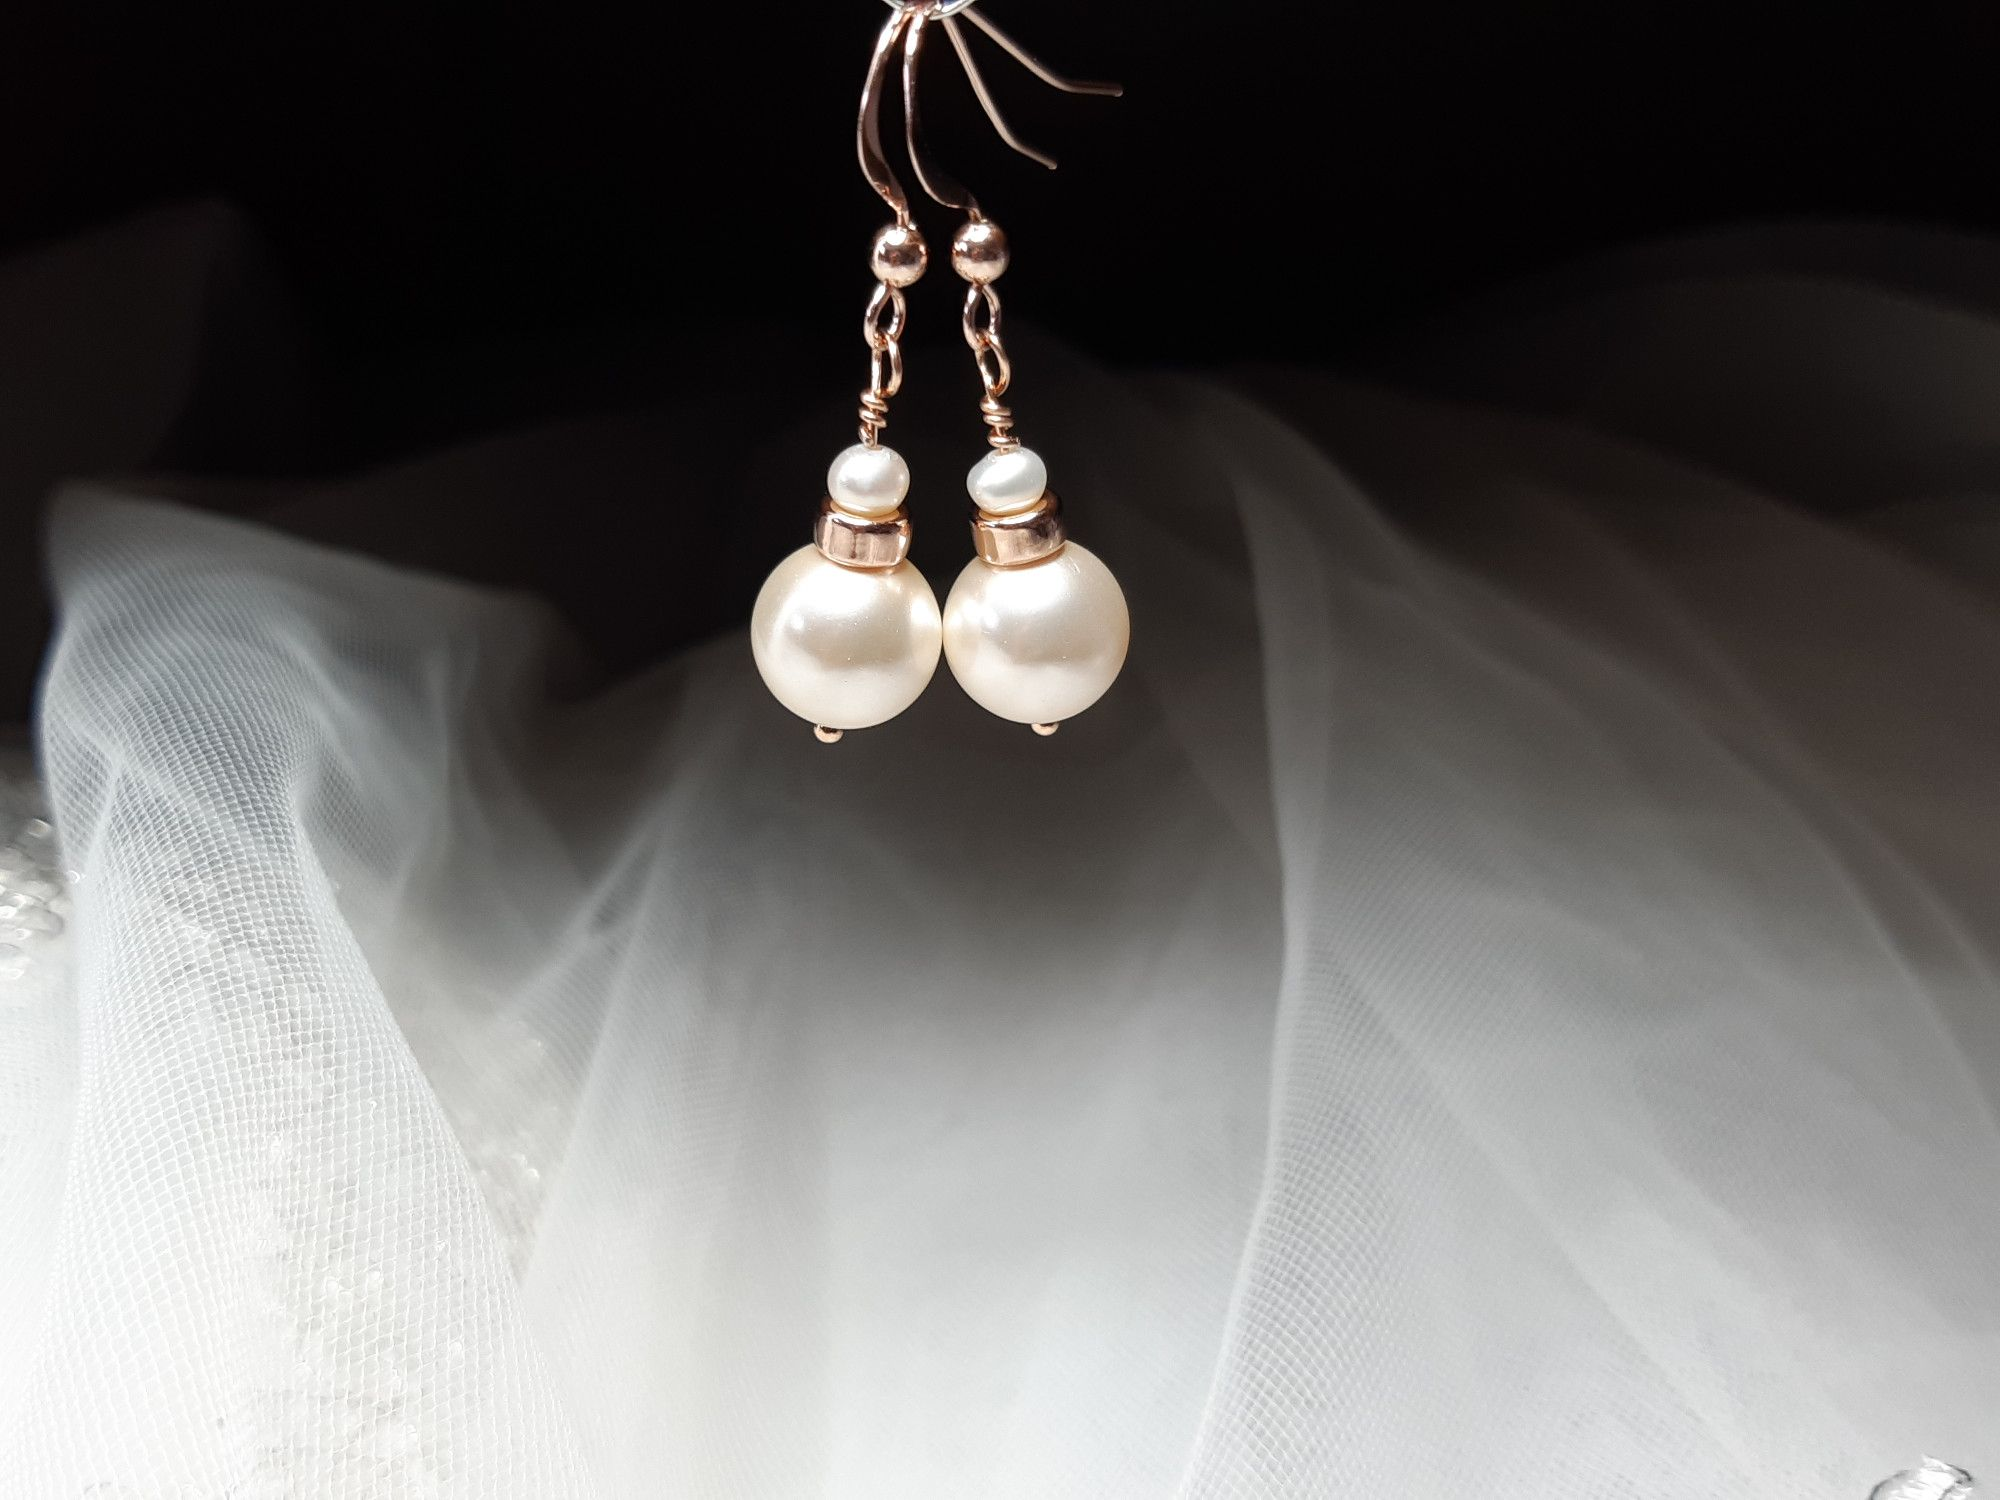 Occasion-bridal-wedding-pearl earrings with rose gold-1.jpg